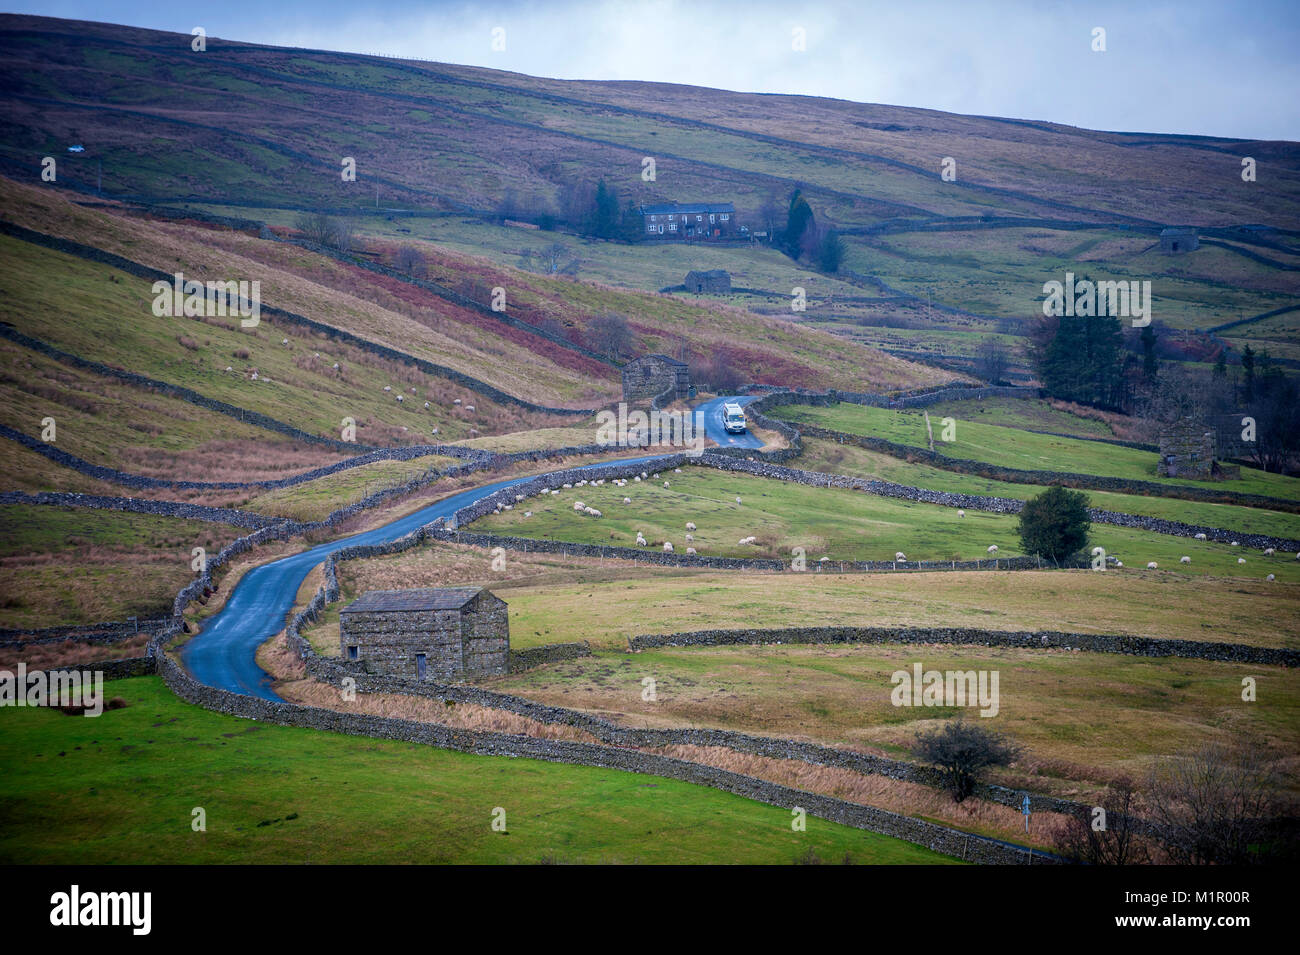 The Little White Bus makes its way on its Swaledale shuttle route this time leaving Keld for next stop Muker. Stock Photo